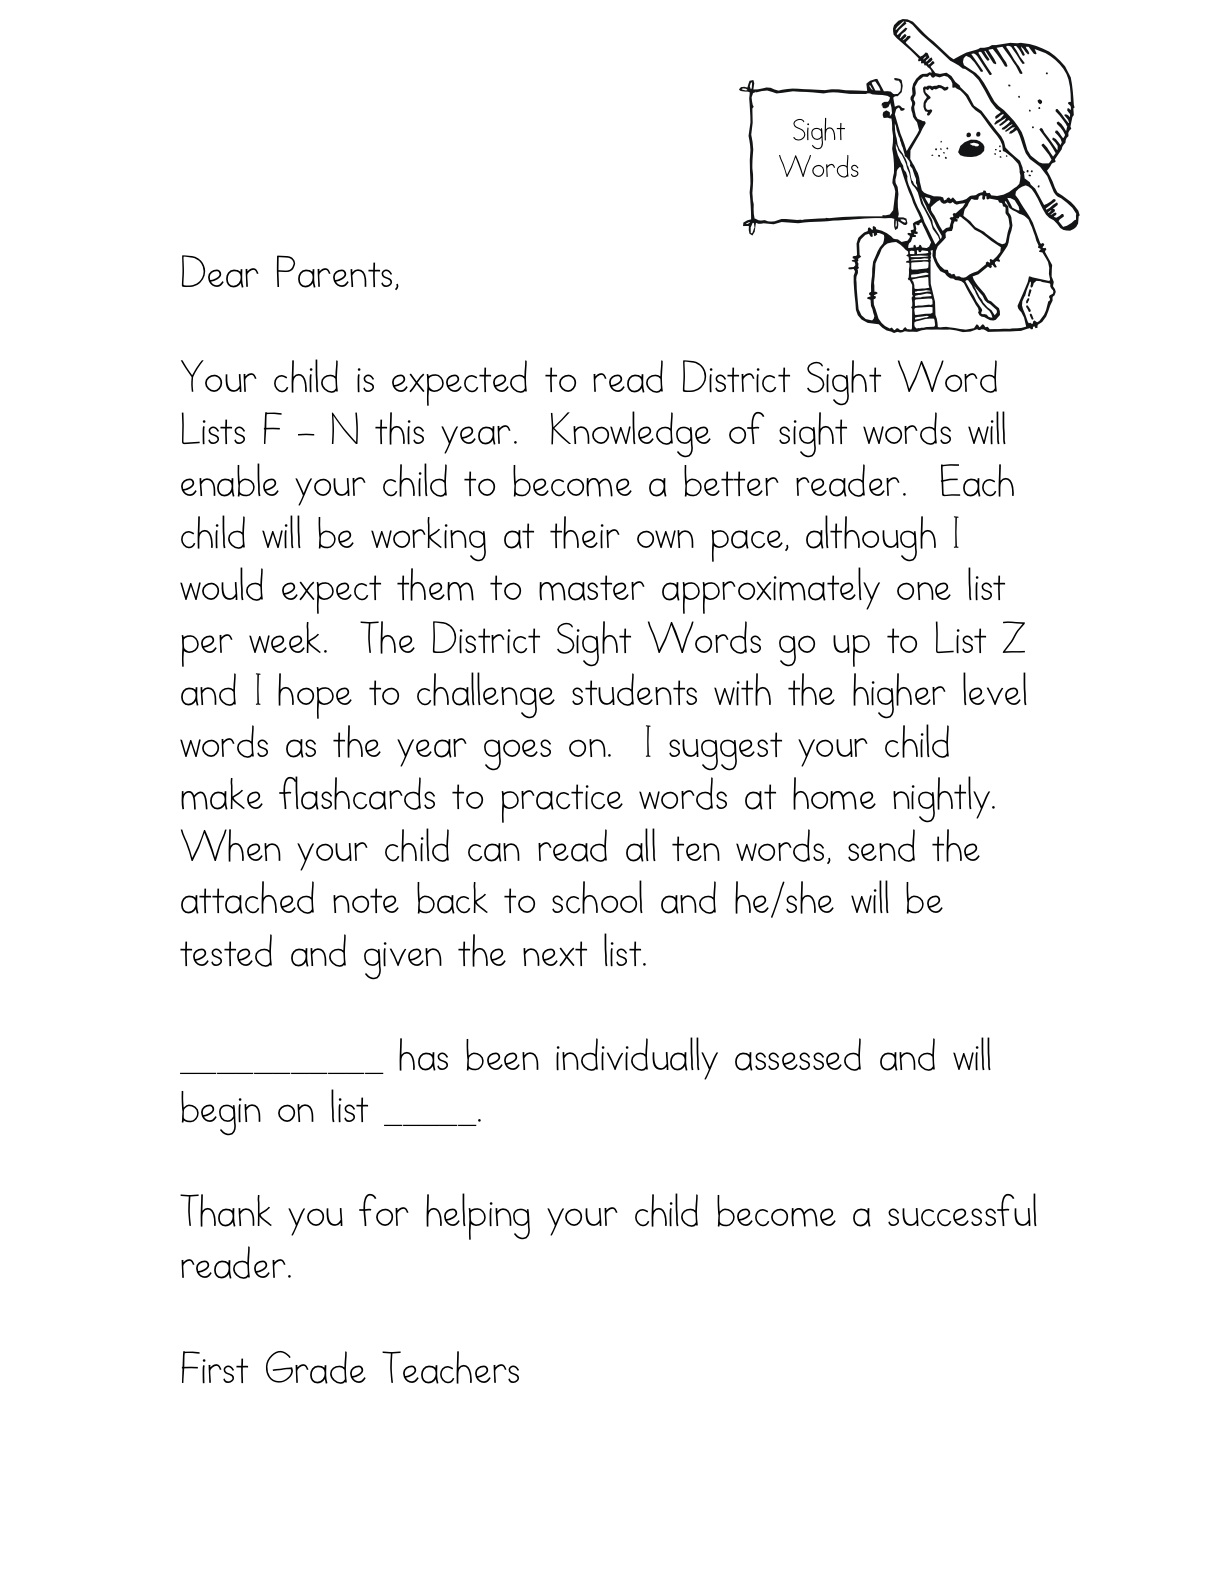 kindergarten teacher introduction letter to parents | Maria blog